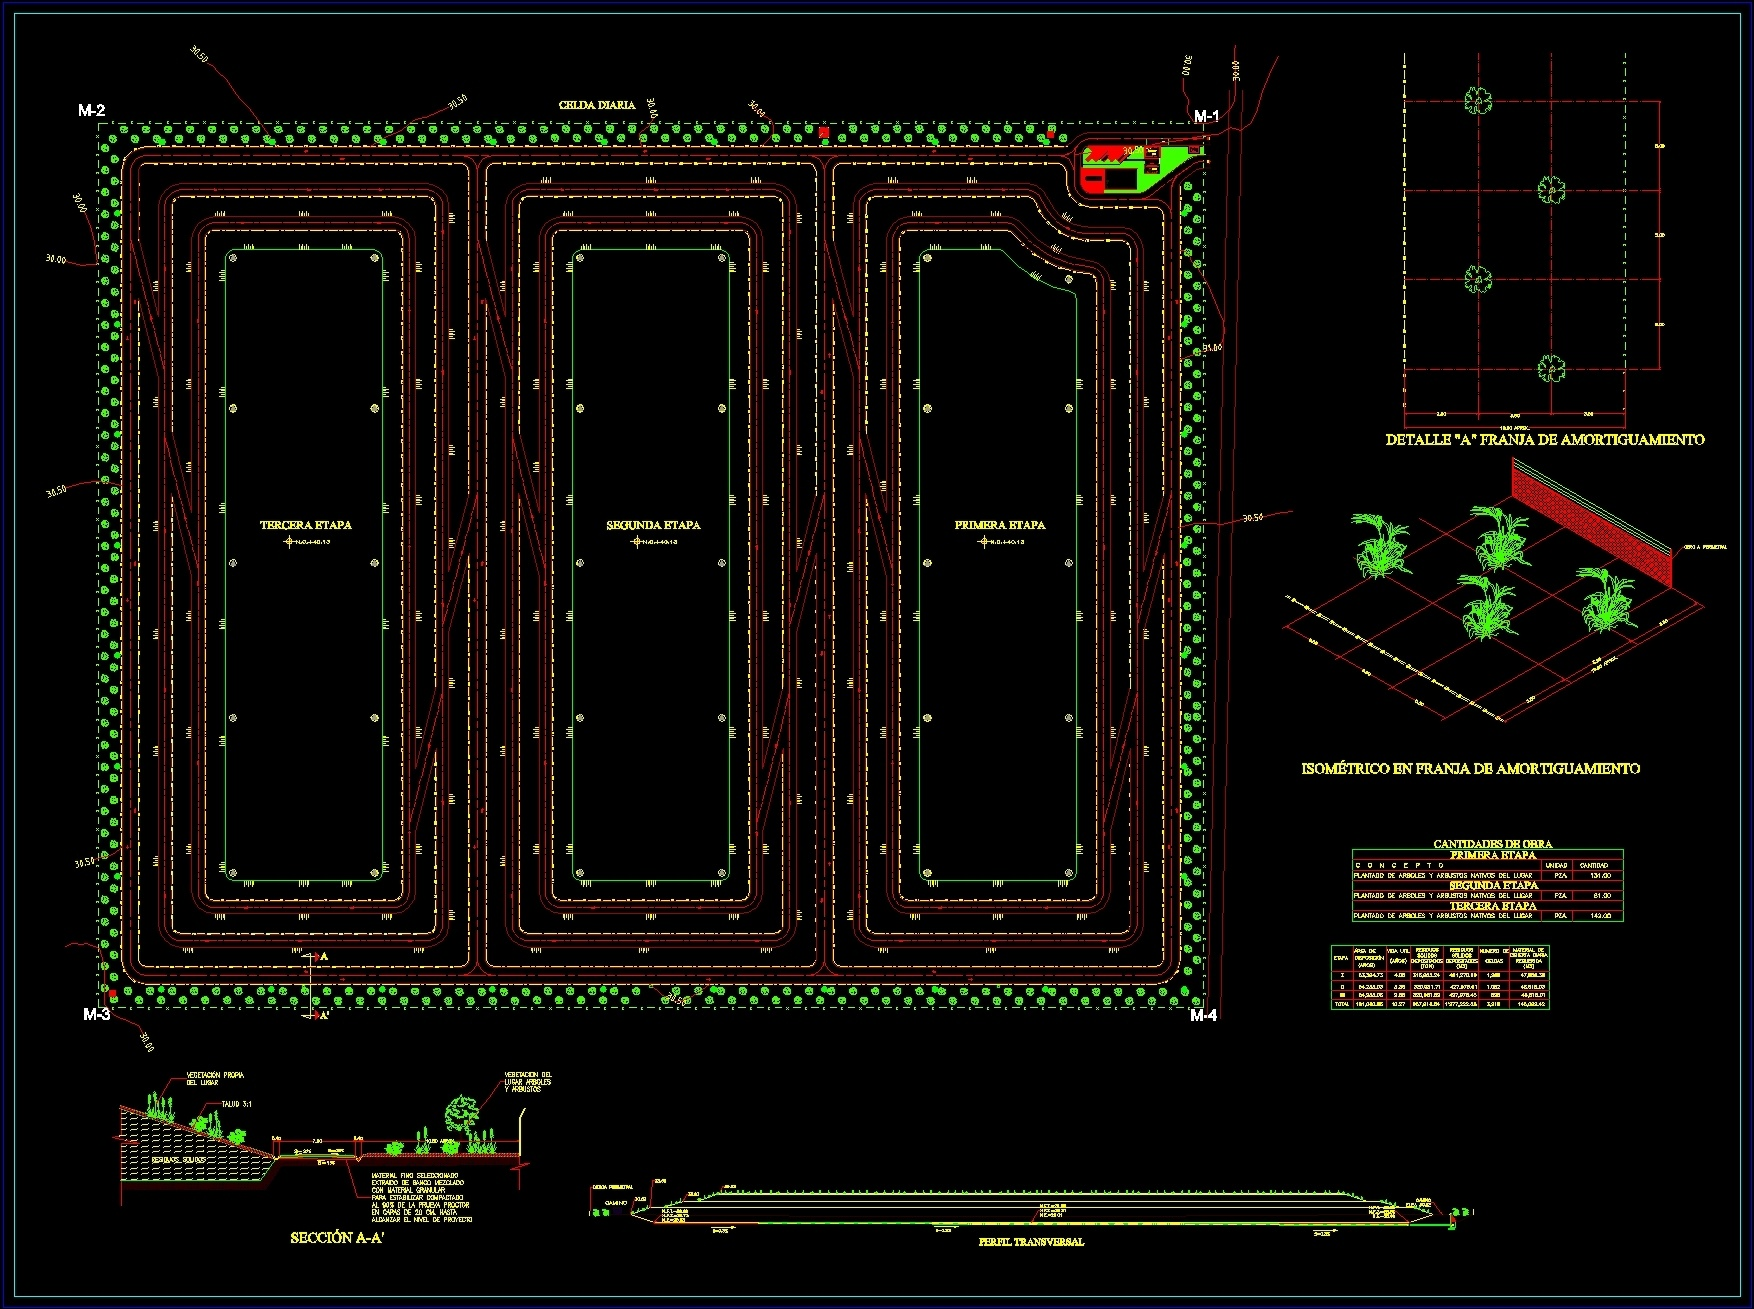 Landfill Dwg Section For Autocad Designscad